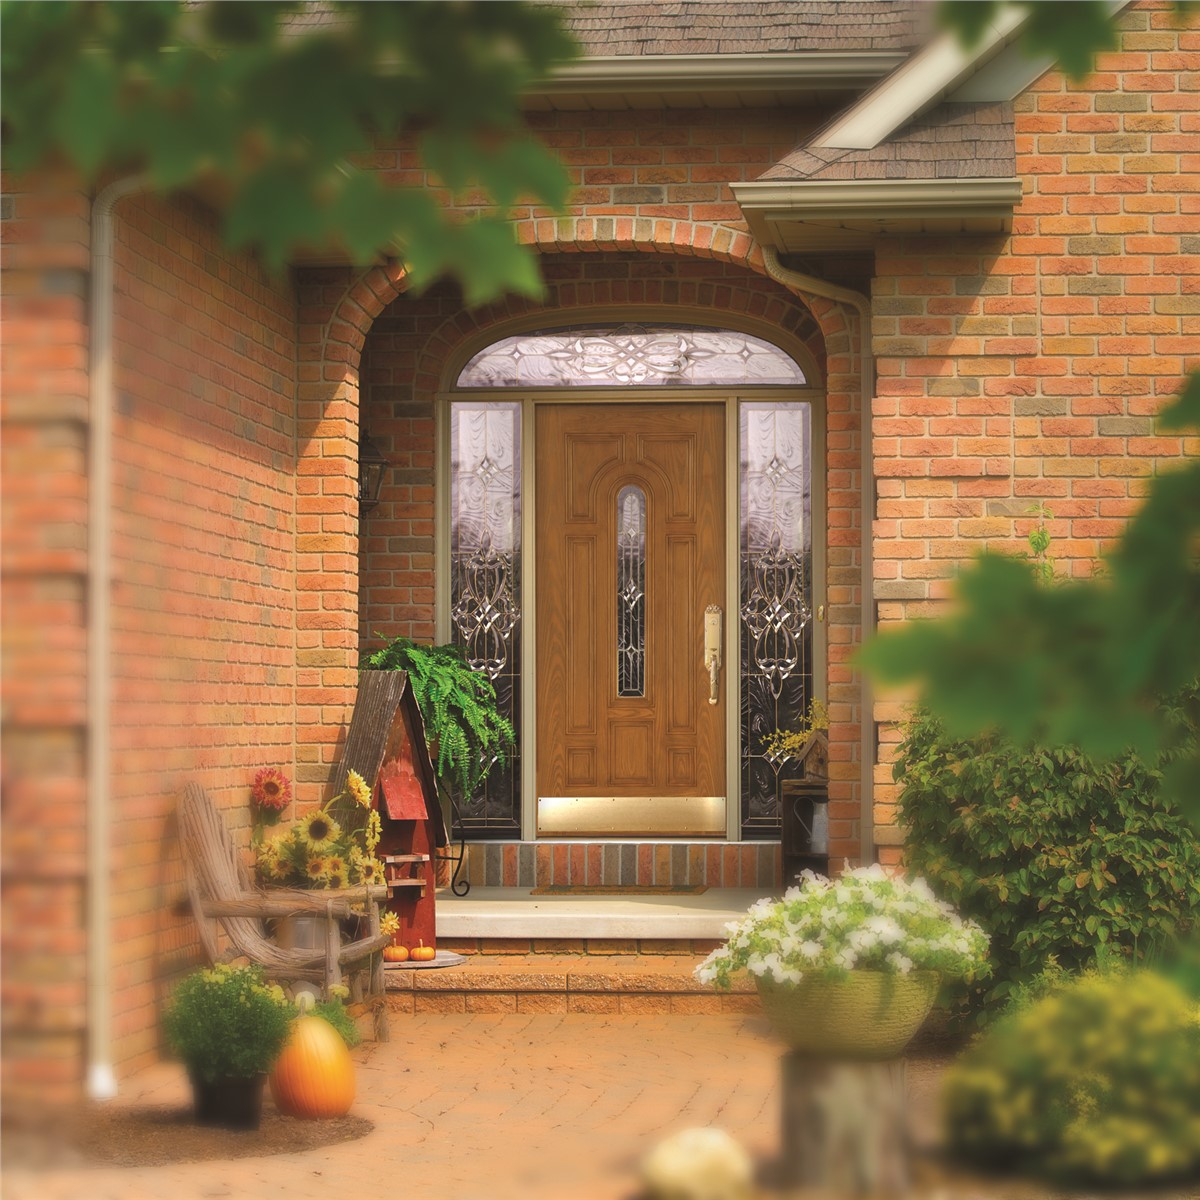 Where To Buy A Front Door: Where To Buy Entry Doors In Cincinnati. New England Entry